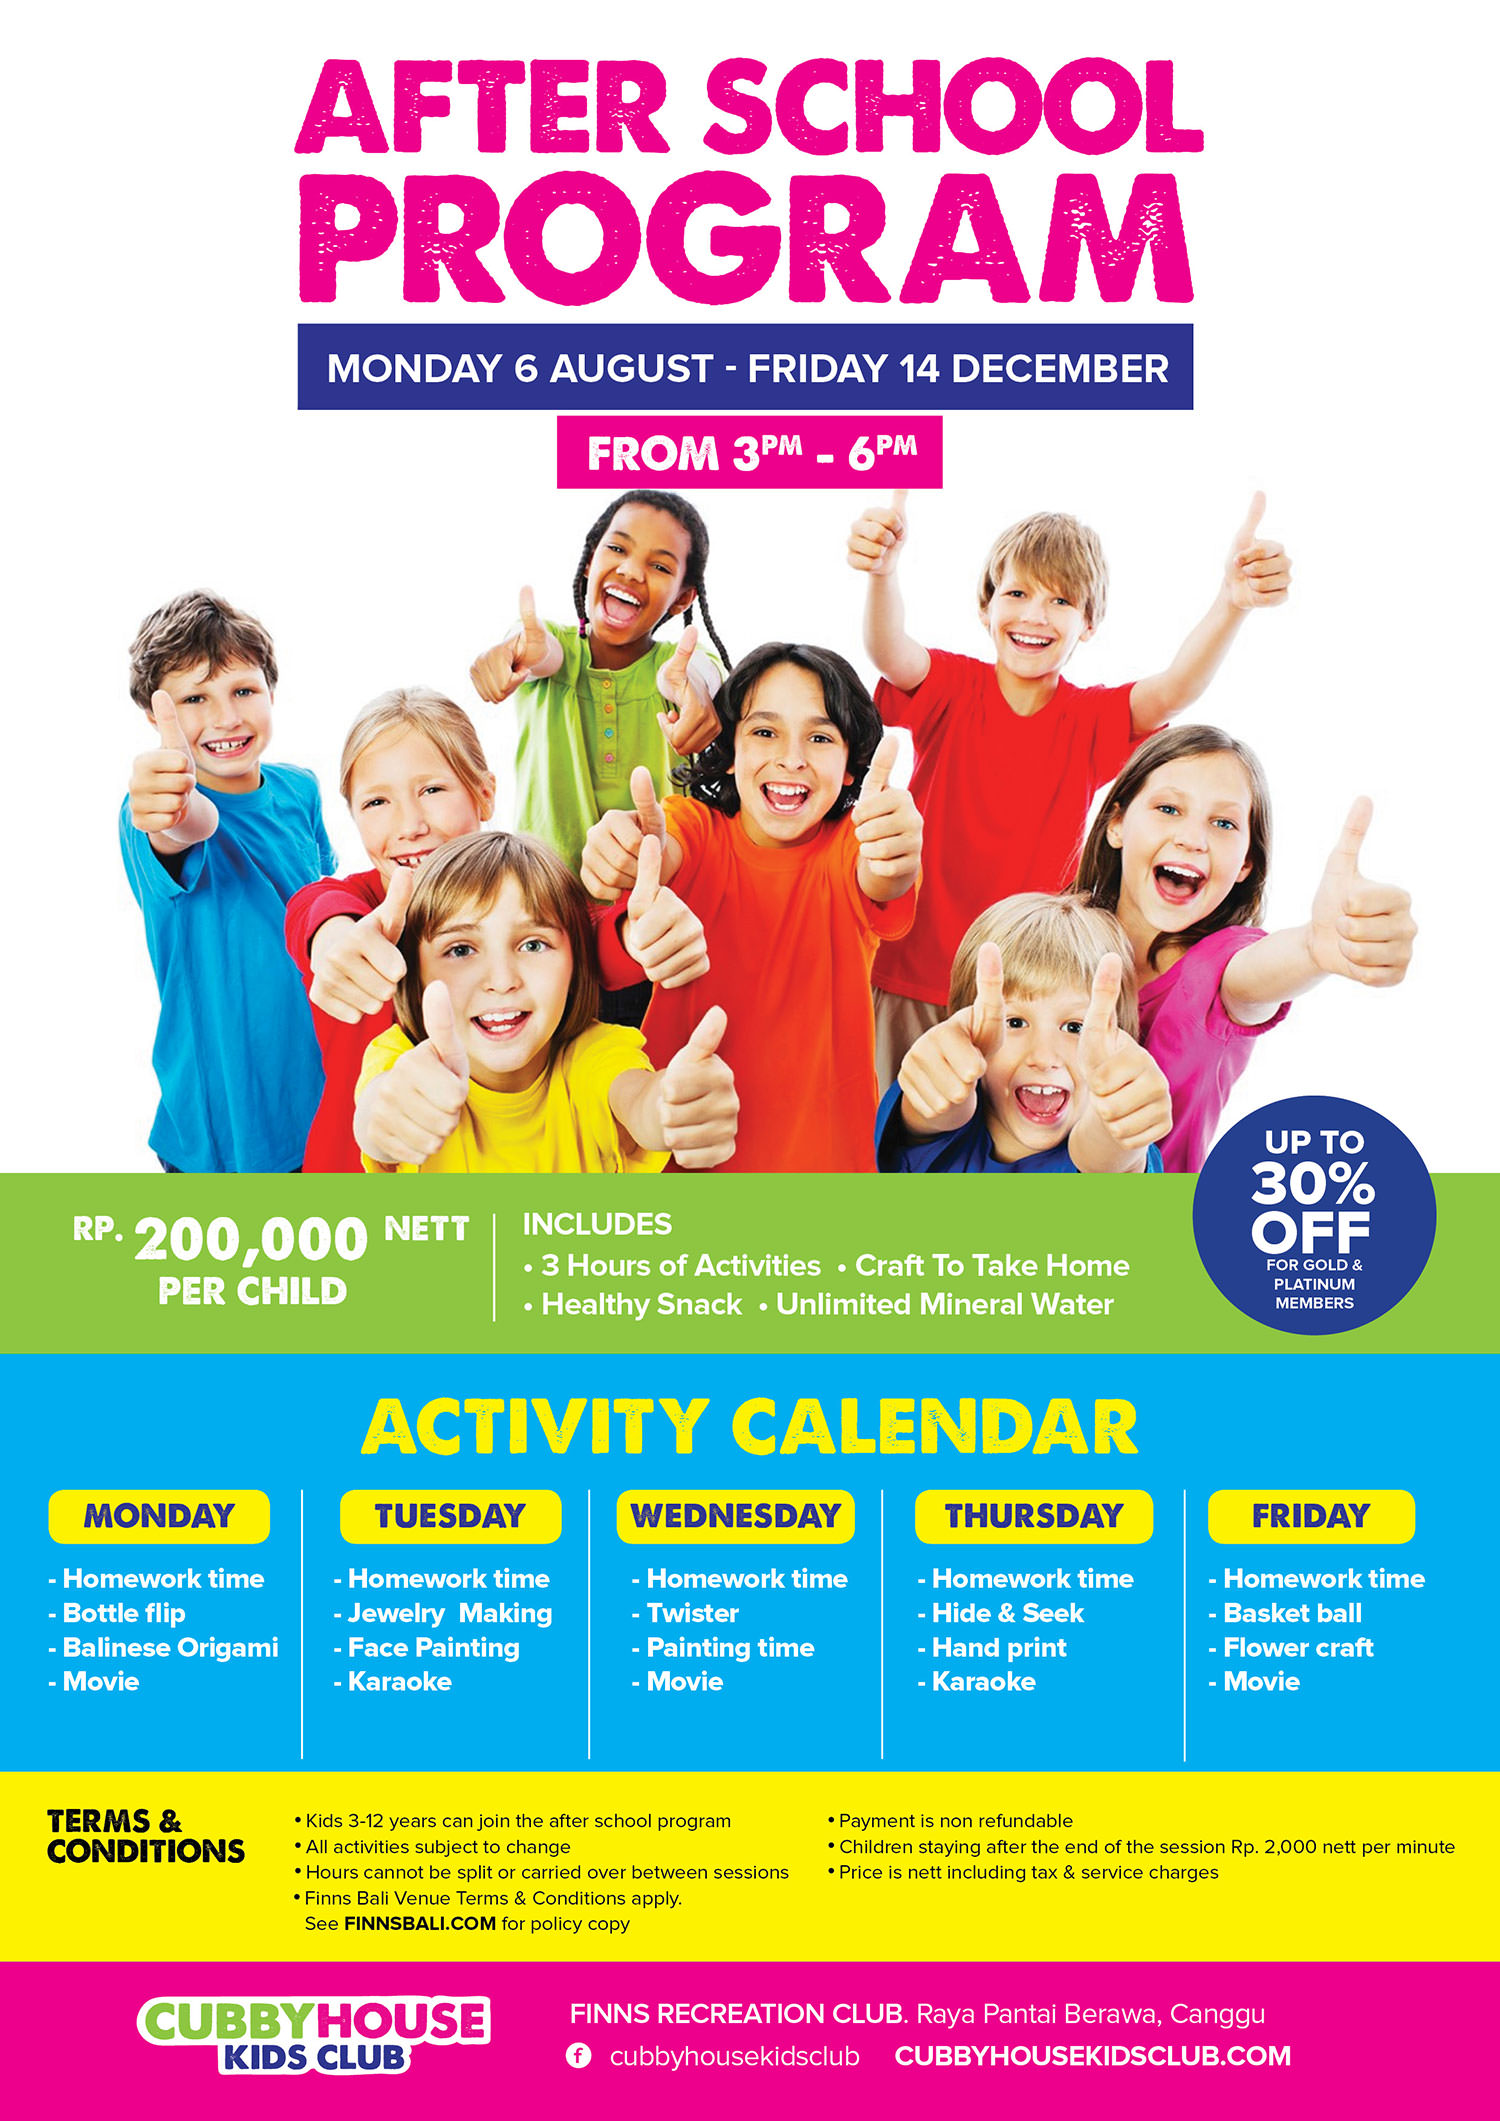 After School Program Cubby House Kids Club Bali